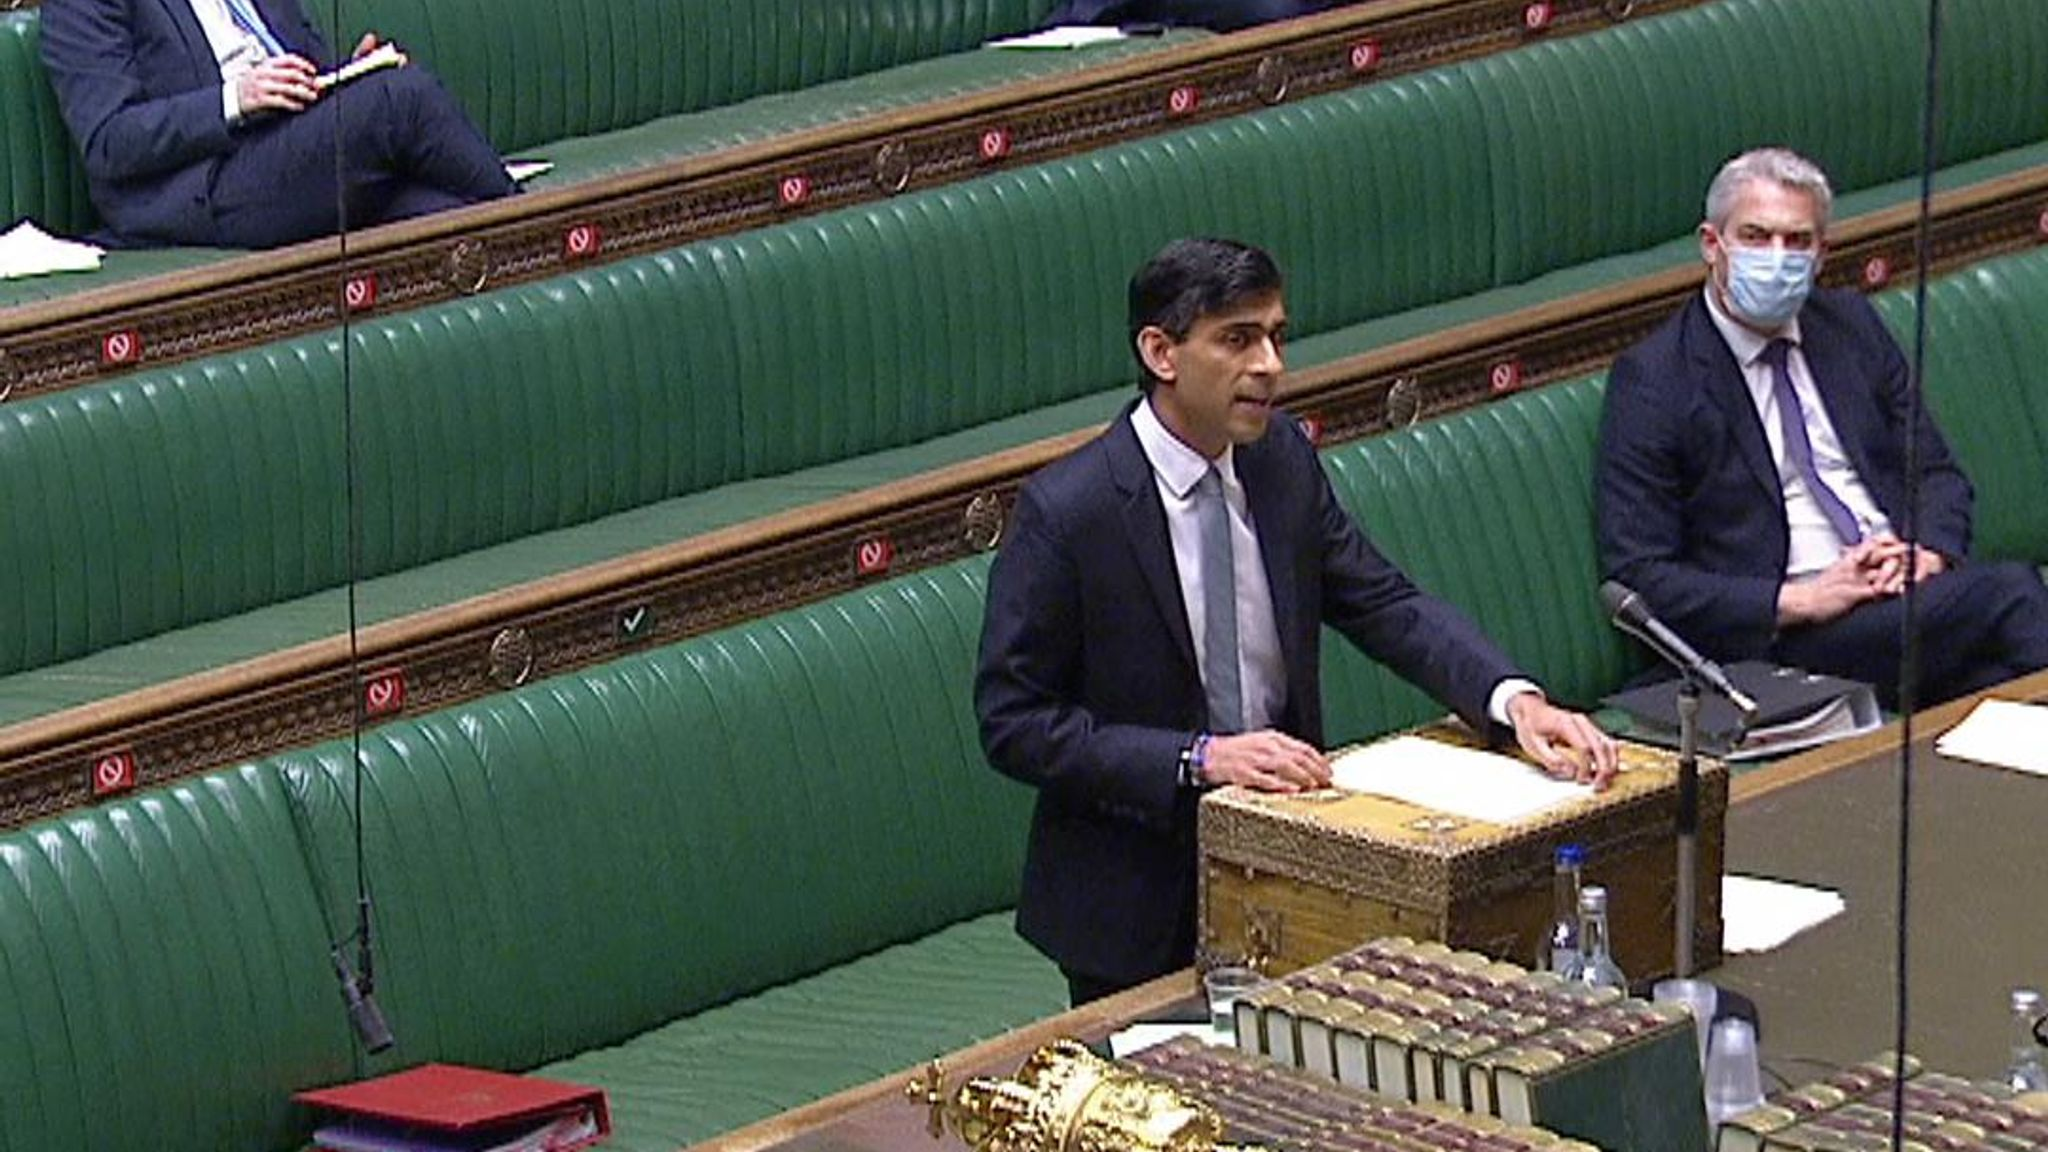 Chancellor Rishi Sunak lays out his plans for freezing income tax thresholds and increasing corporation tax to 23%.